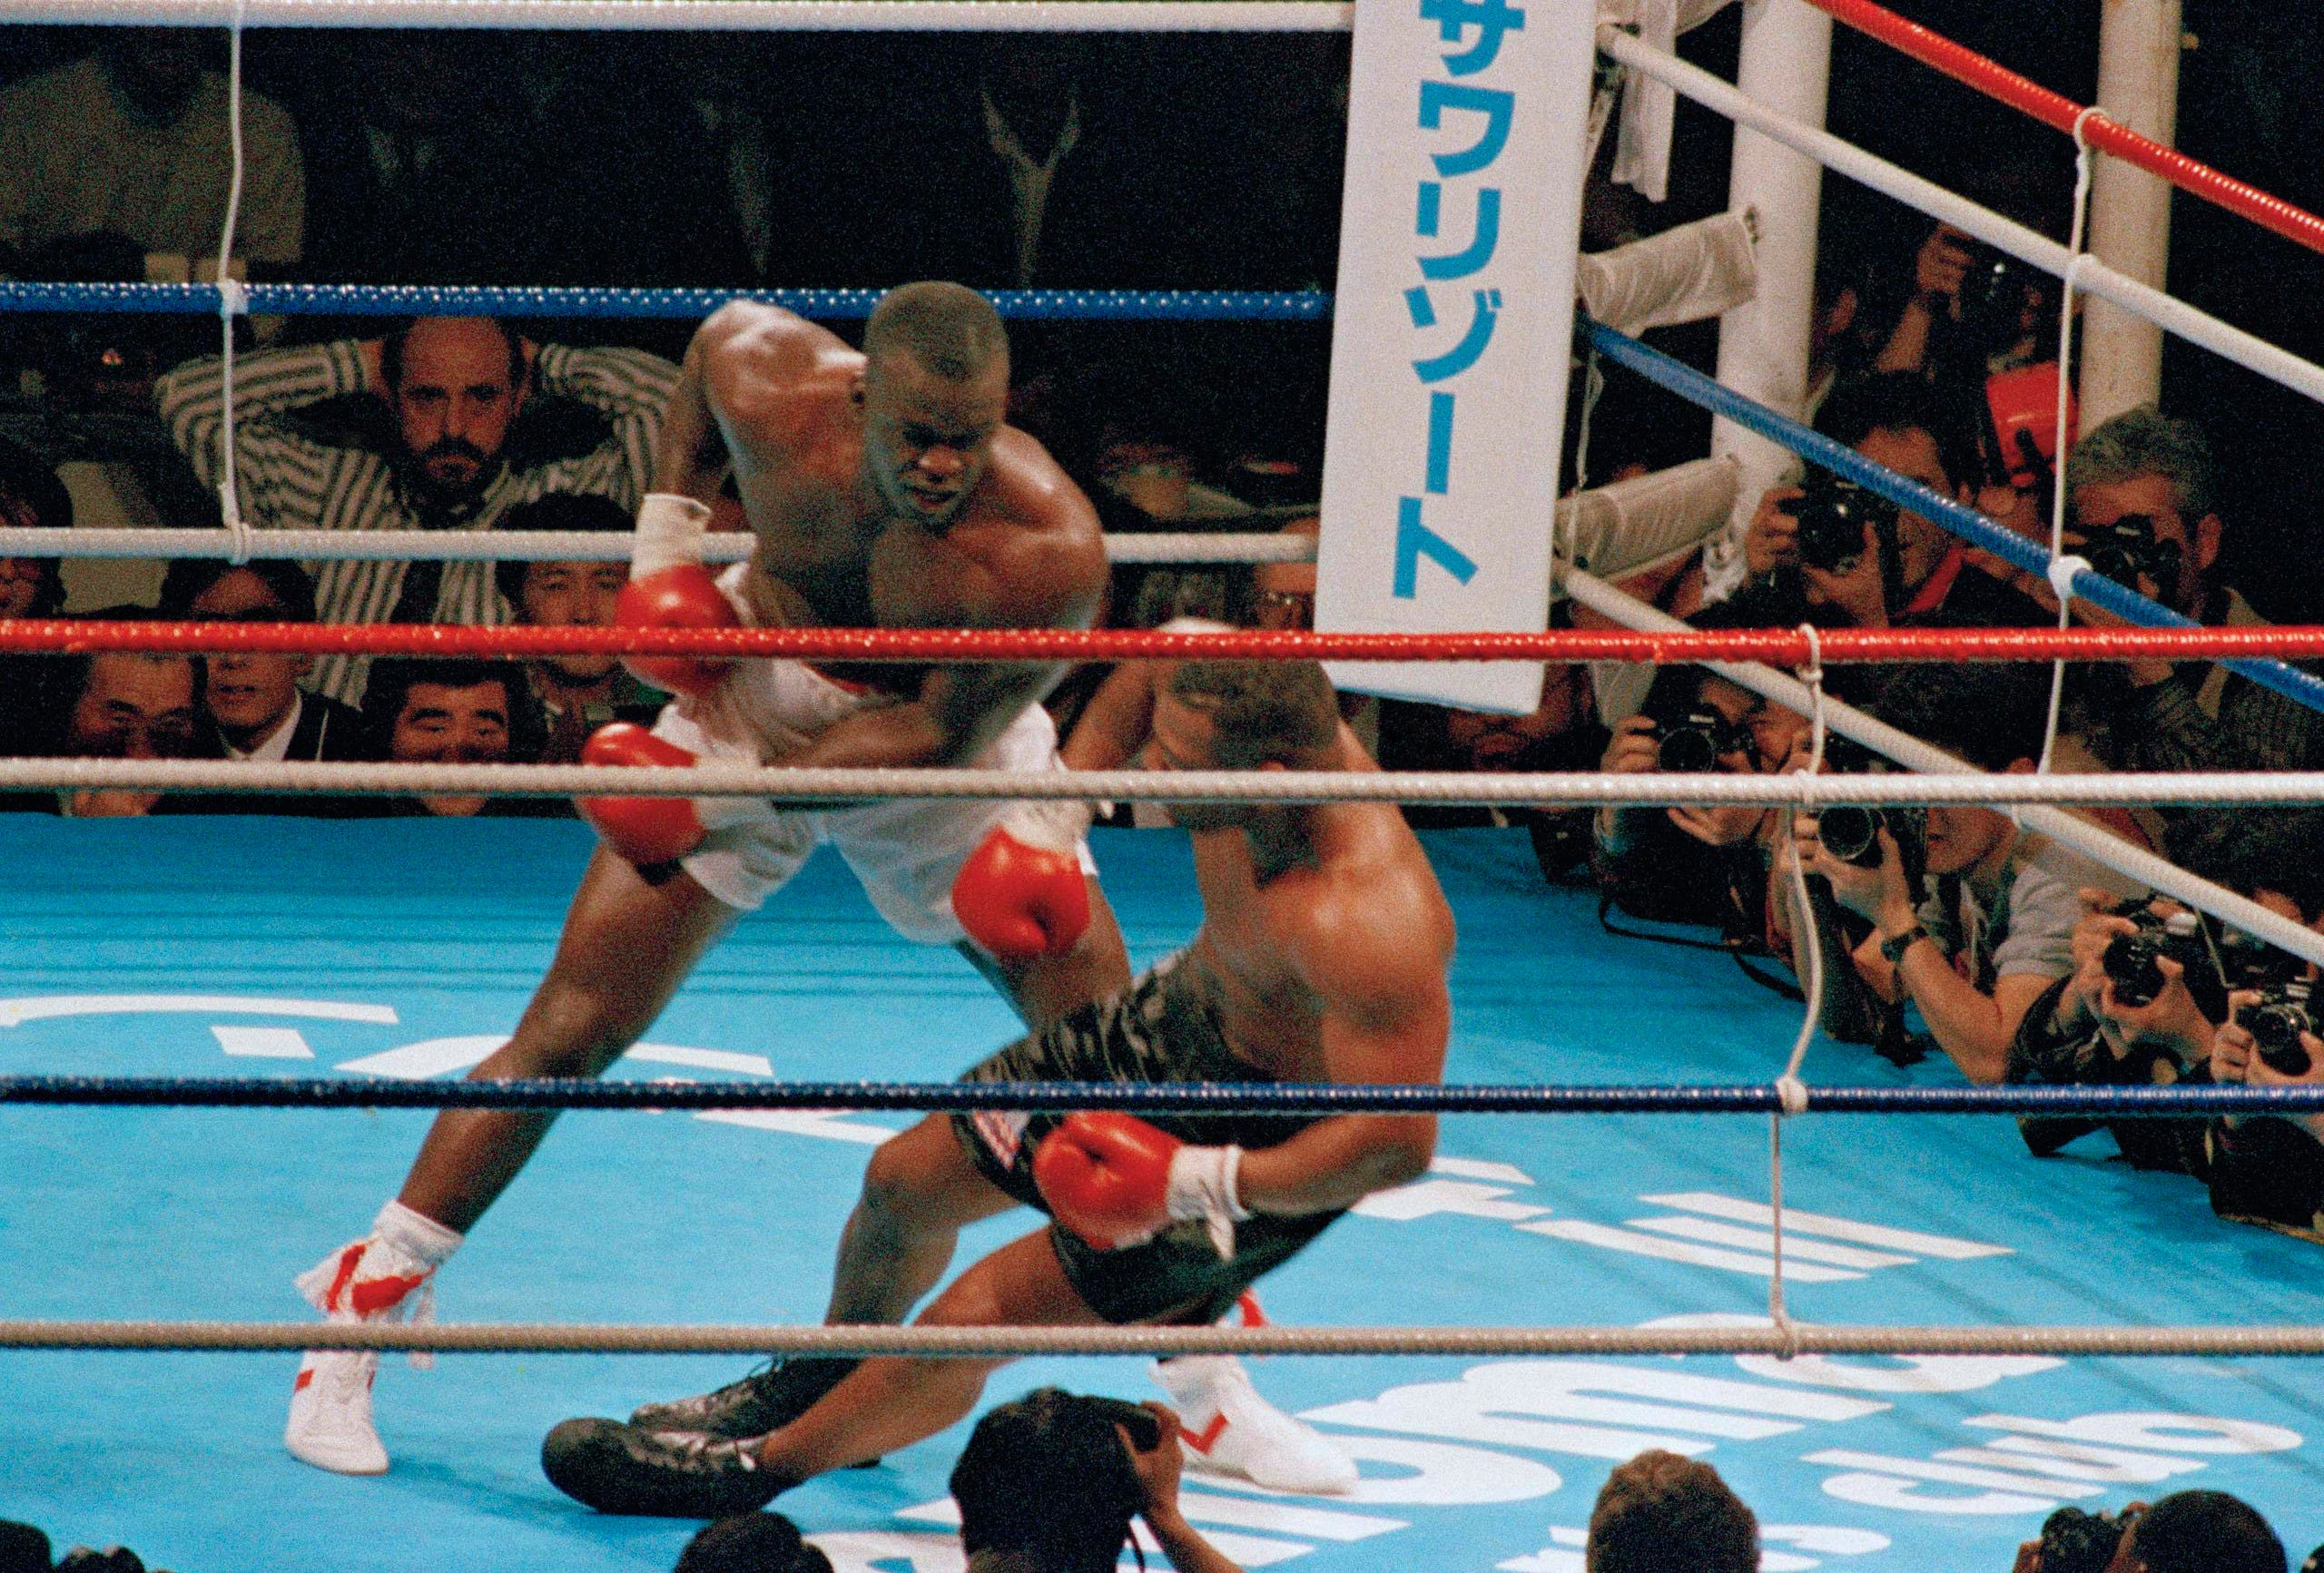 In this Feb. 11, 1990, file photo, James Douglas follows with a left, dropping Mike Tyson to the canvas in the 10th round of scheduled 12-round heavyweight champion bout at the Tokyo Dome in Tokyo. Tyson, the youngest heavyweight champion in boxing history, comes into the bout 37-0 with 33 knockouts, while the unknown Douglas is 29-4-1 with 19 KOs. (AP)